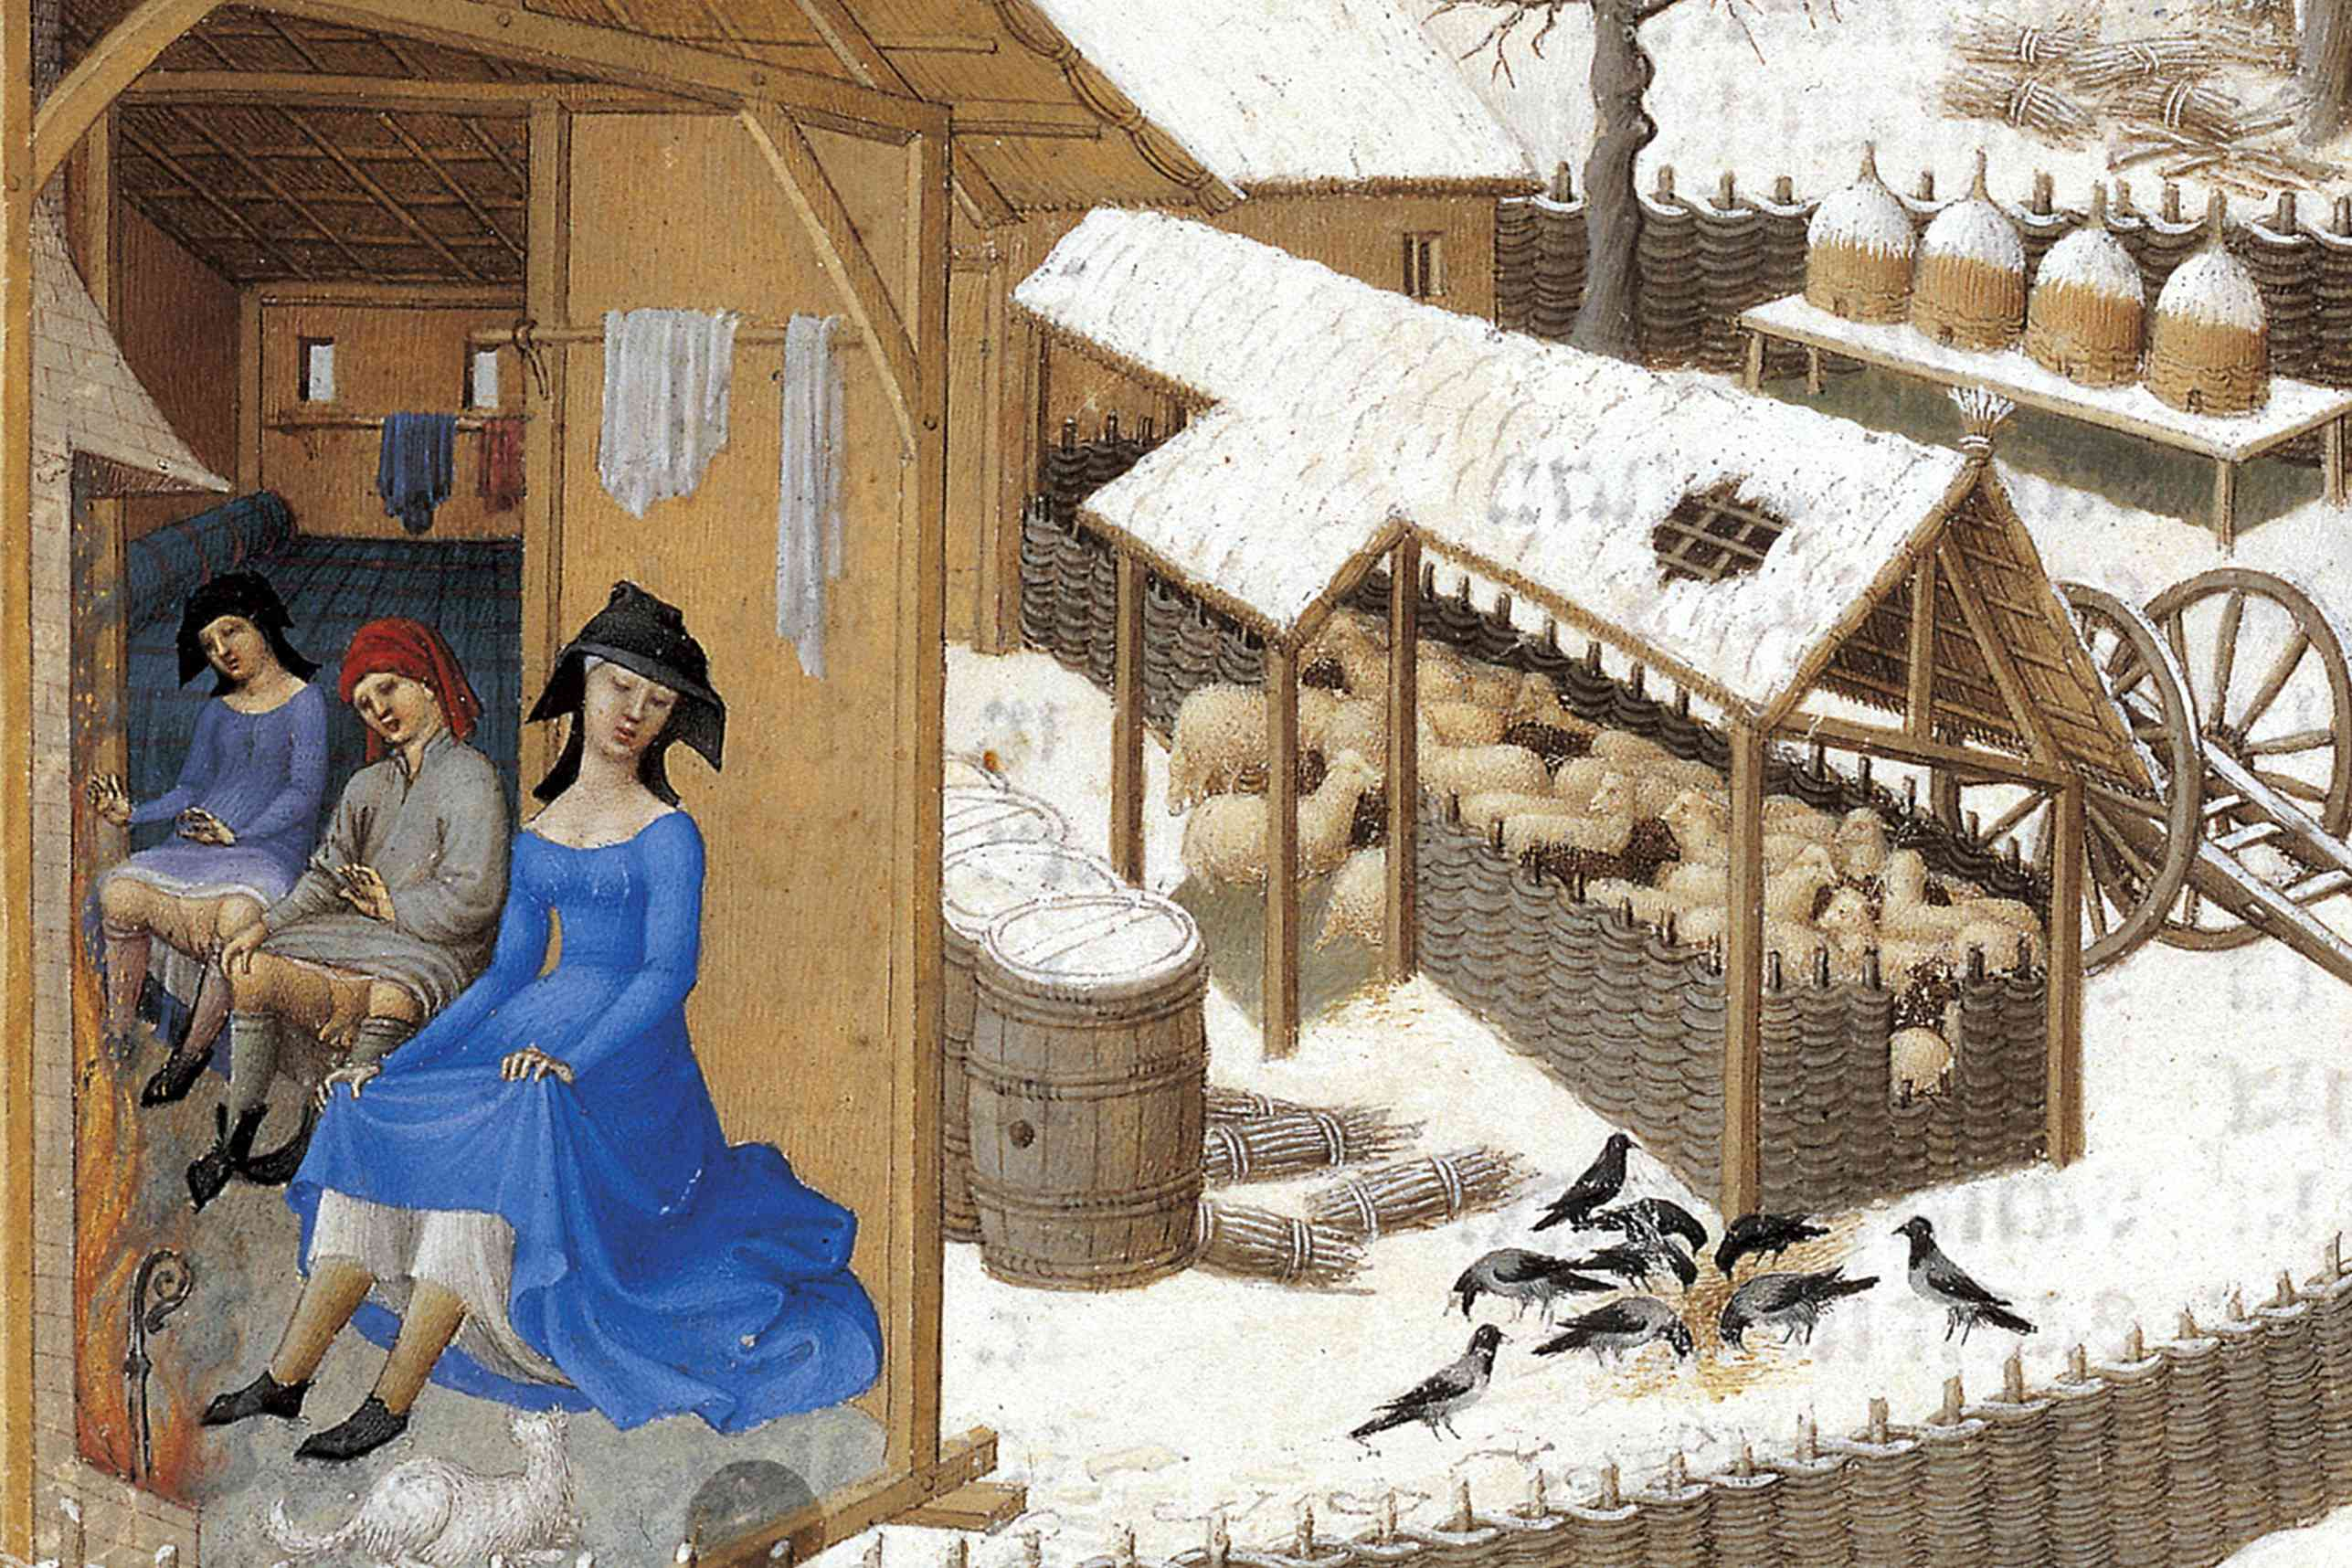 Three laborers air out beneath their undertunics in art by the Limbourg brothers